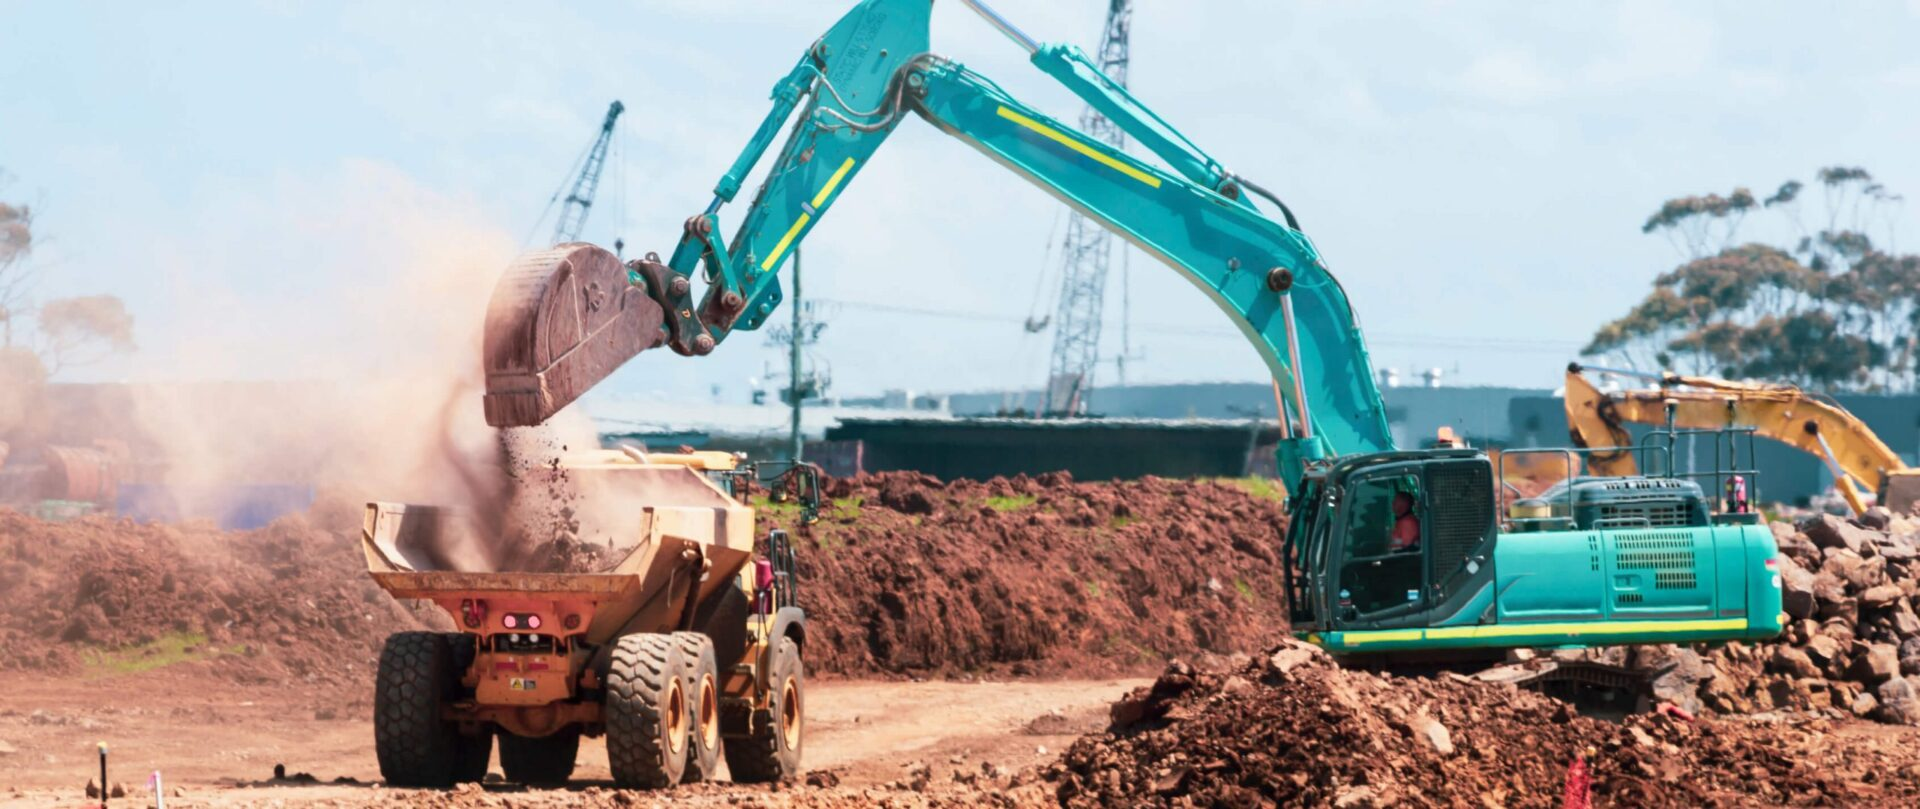 Research Report – Carbon Footprint of Construction Equipment